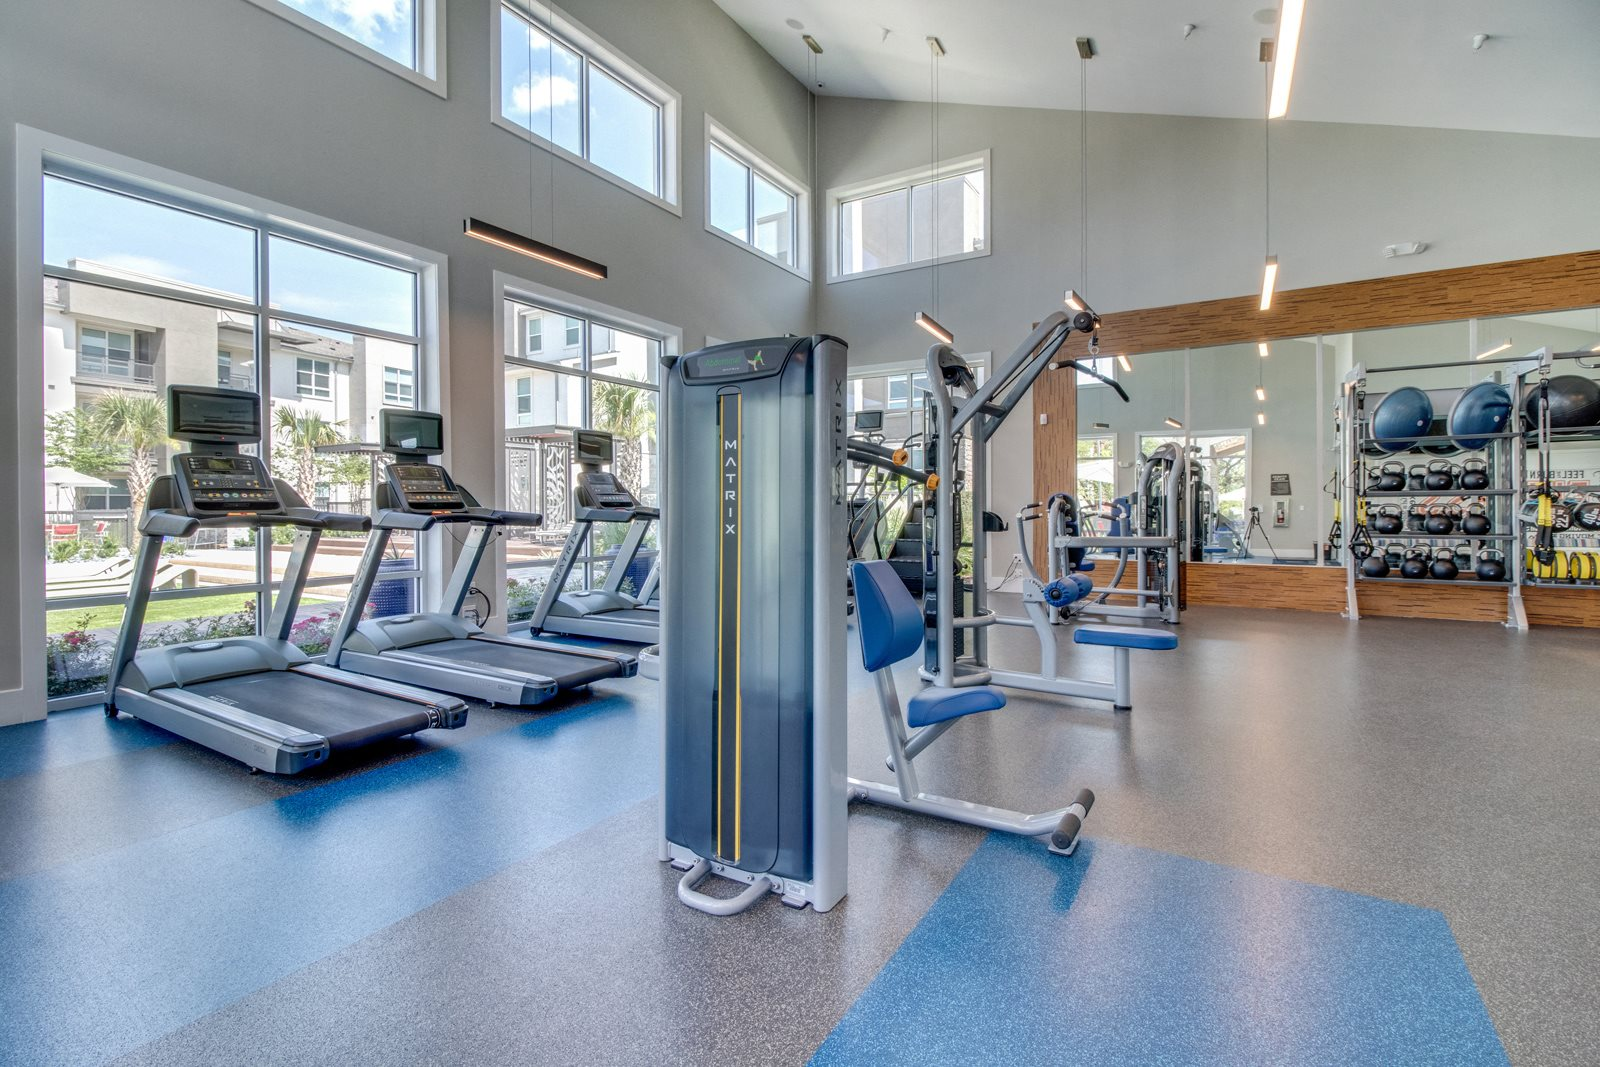 Fully-Equipped Fitness Center at Windsor Republic Place, Austin, 78727